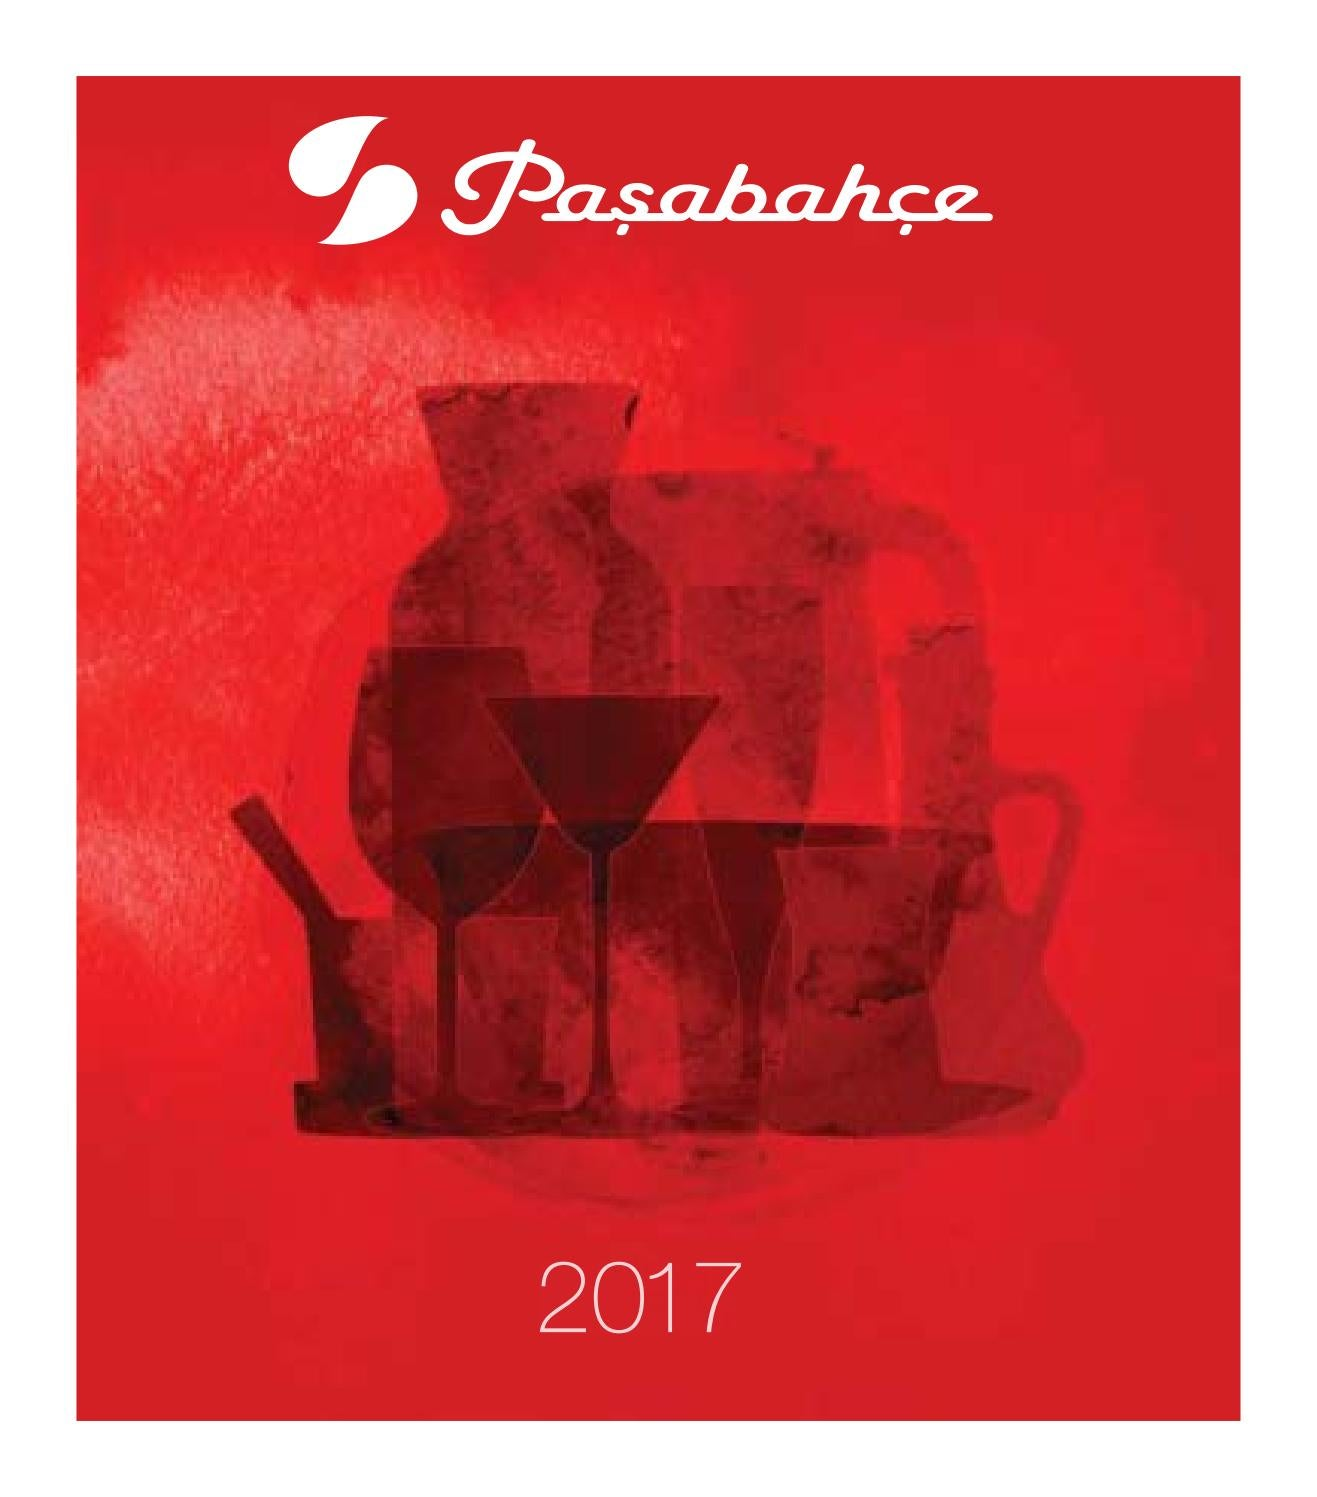 Pasabahce Home 2017 By Dajar Kft Dajar Home Garden Srl Issuu